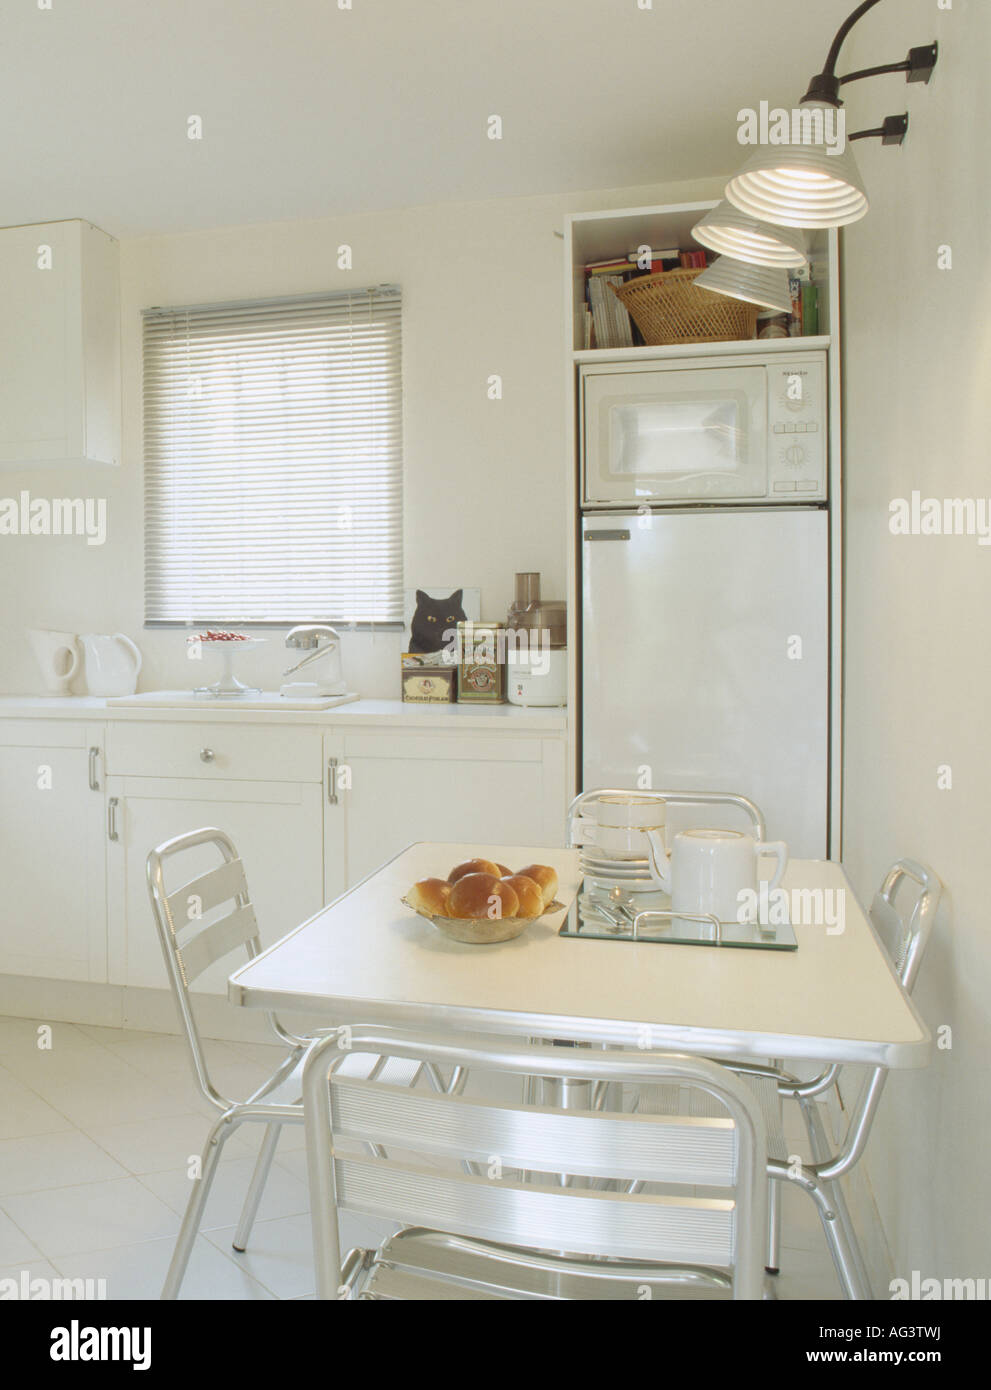 Metal Lights Above Metal Chairs And Table In Modern White Kitchen Stock Photo Alamy